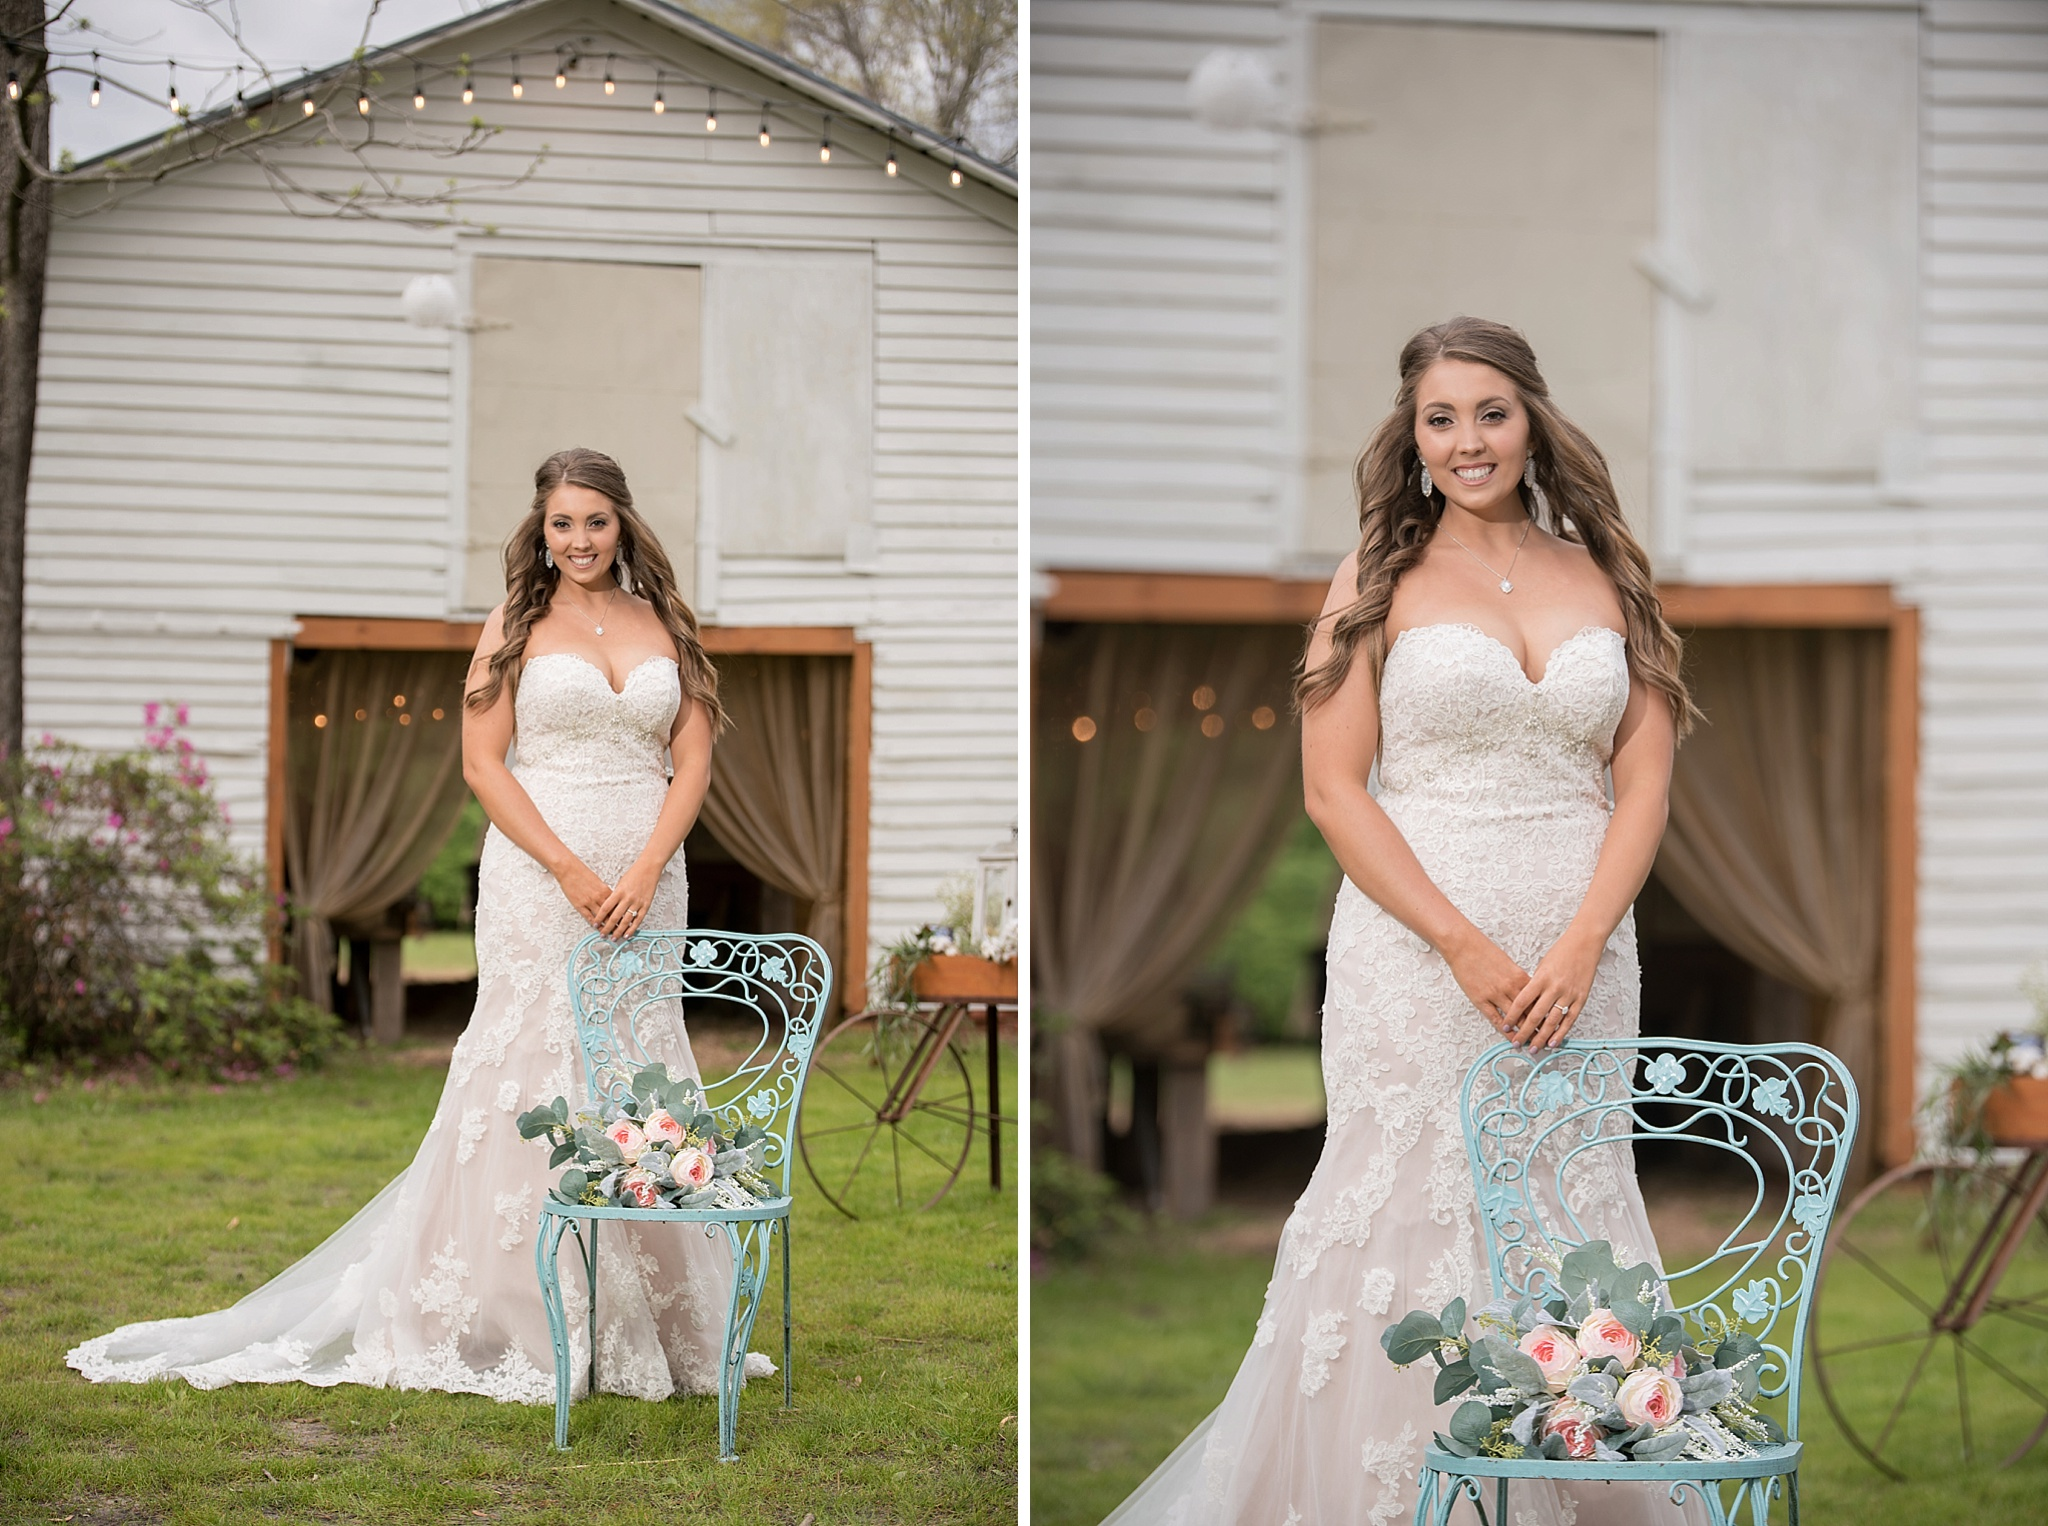 Longstraw-Farms-NC-Wedding-Photographer-053.jpg